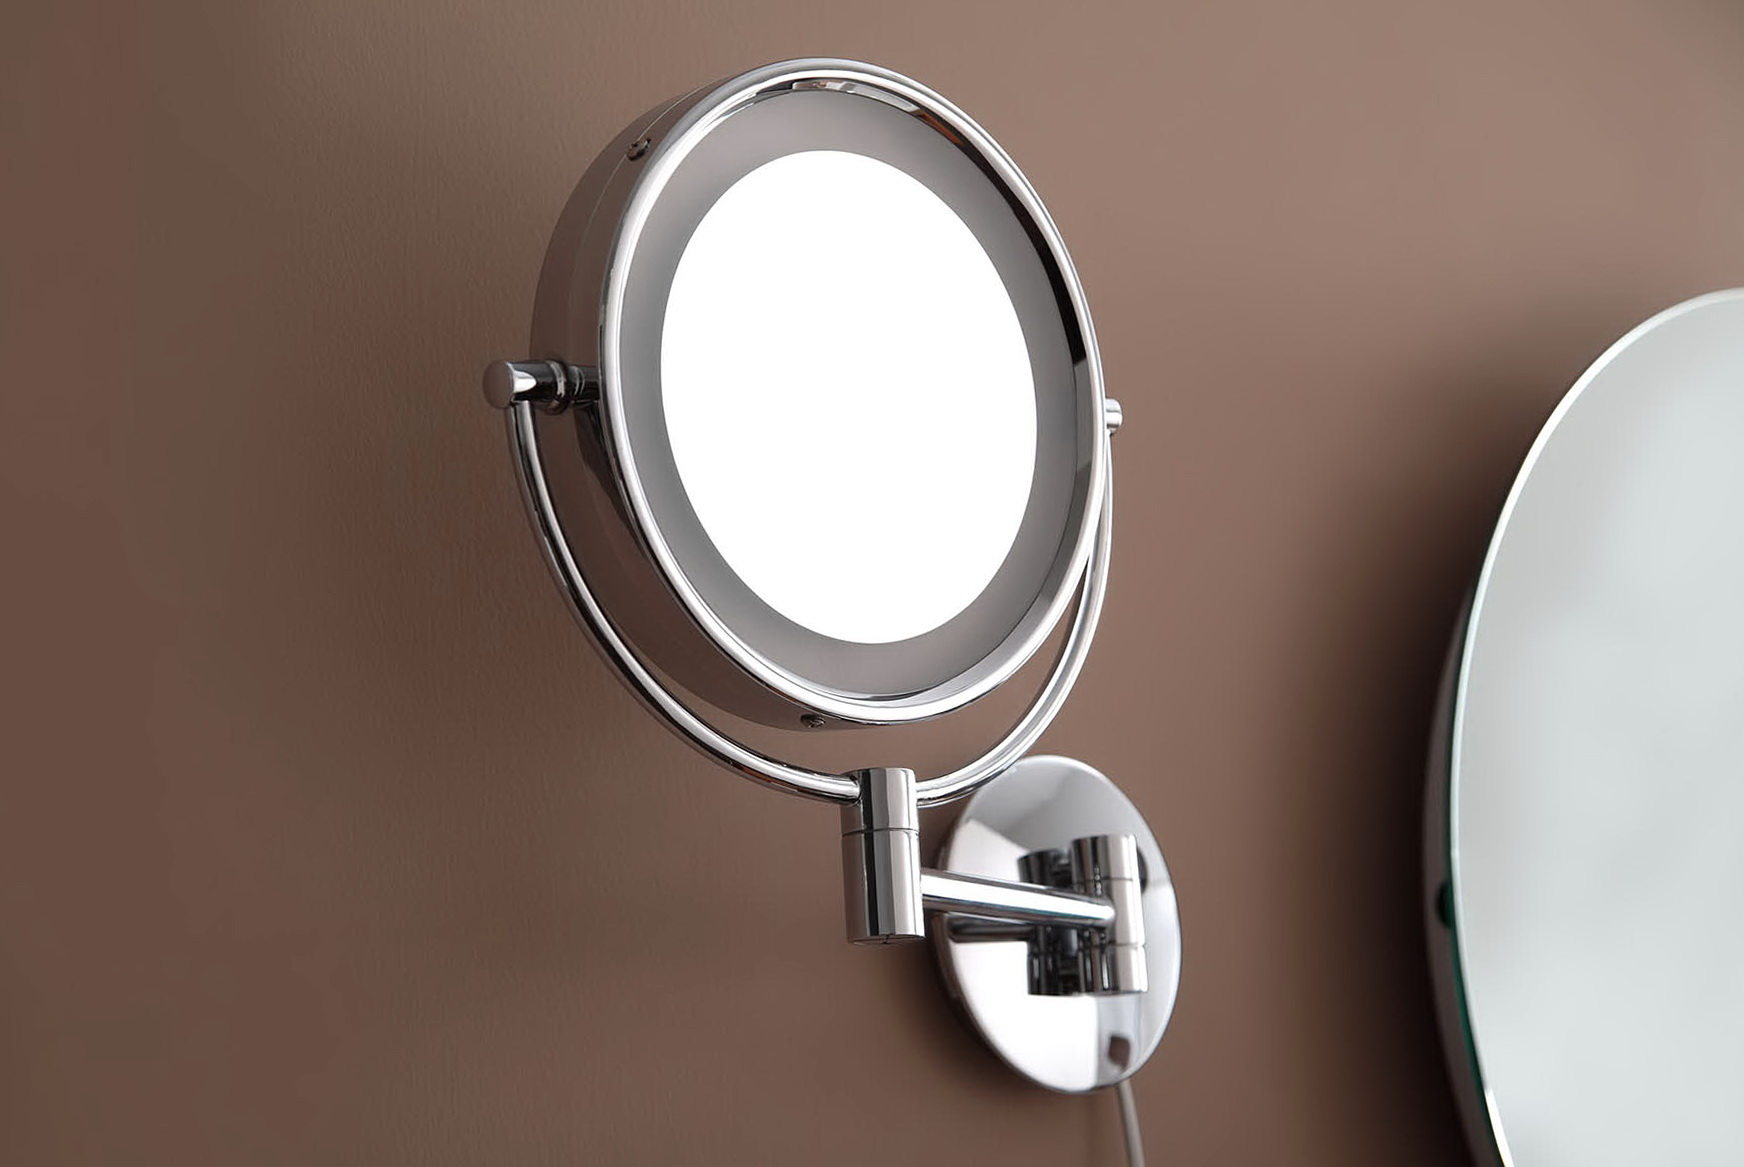 Wall Mount Magnifying Lamp : Wall Mounted Magnifying Mirror With Light Home Design Ideas